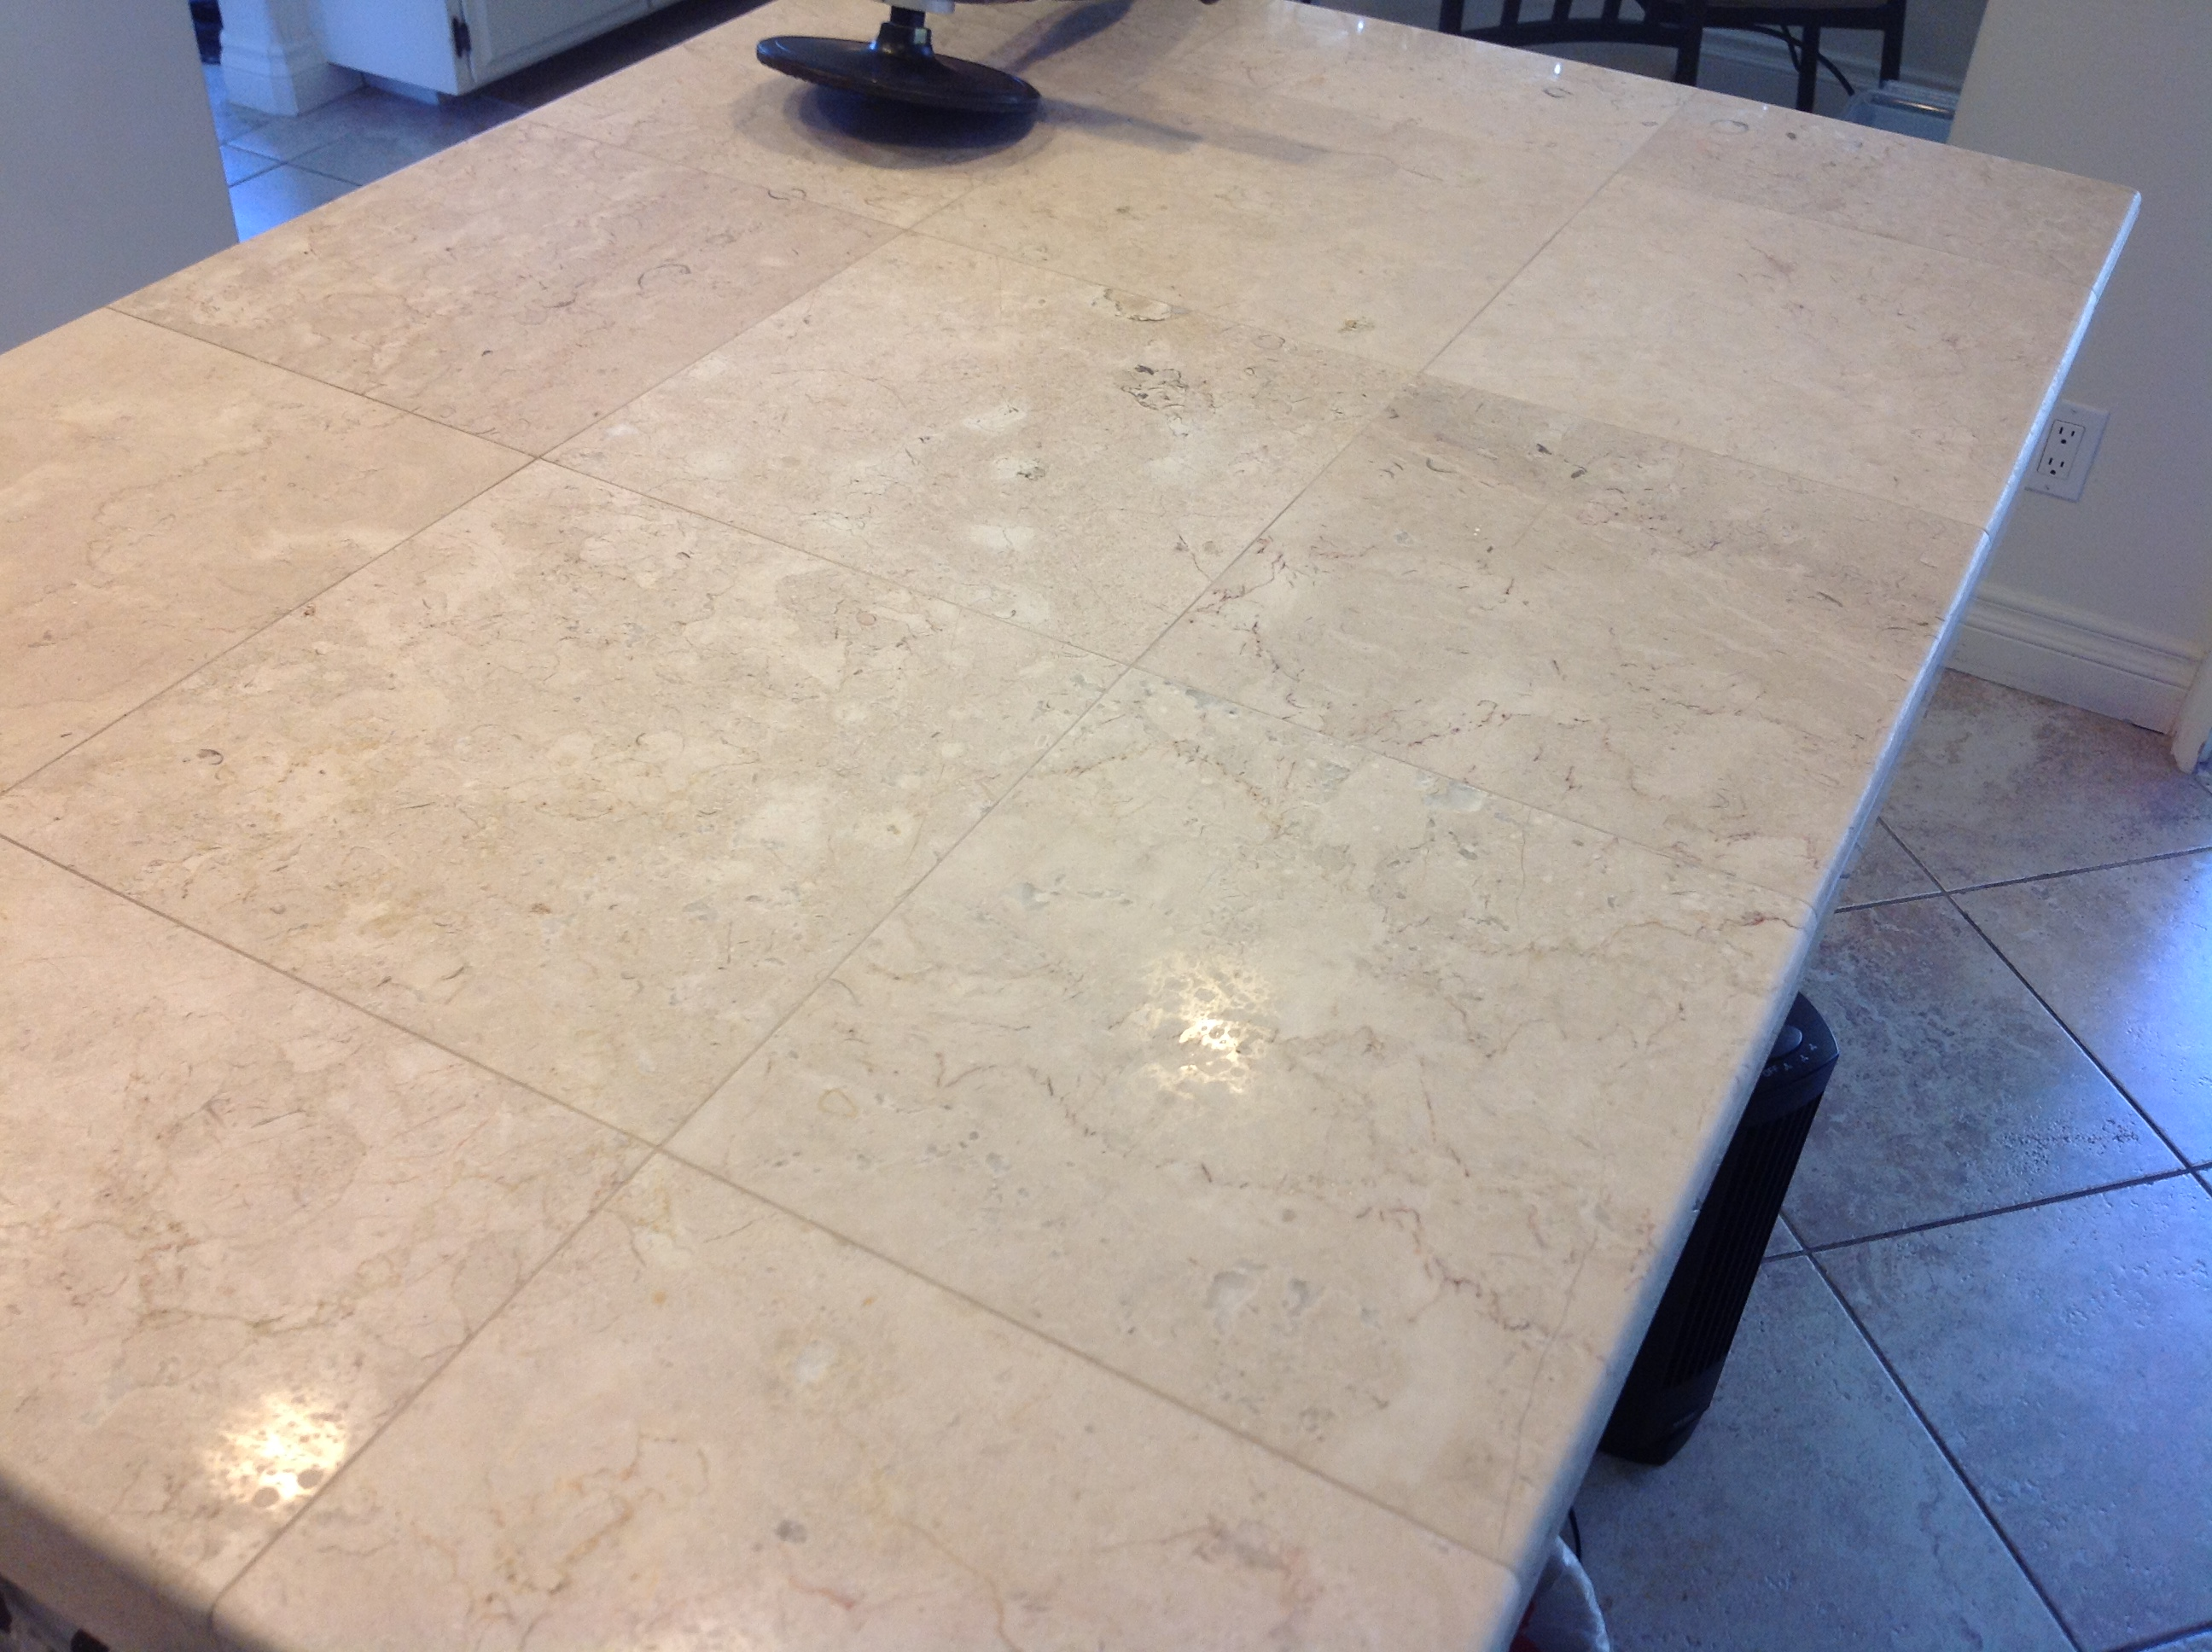 How To Get Stains Off Marble Countertop San Francisco Marble Tile Countertop Polishing And Grout